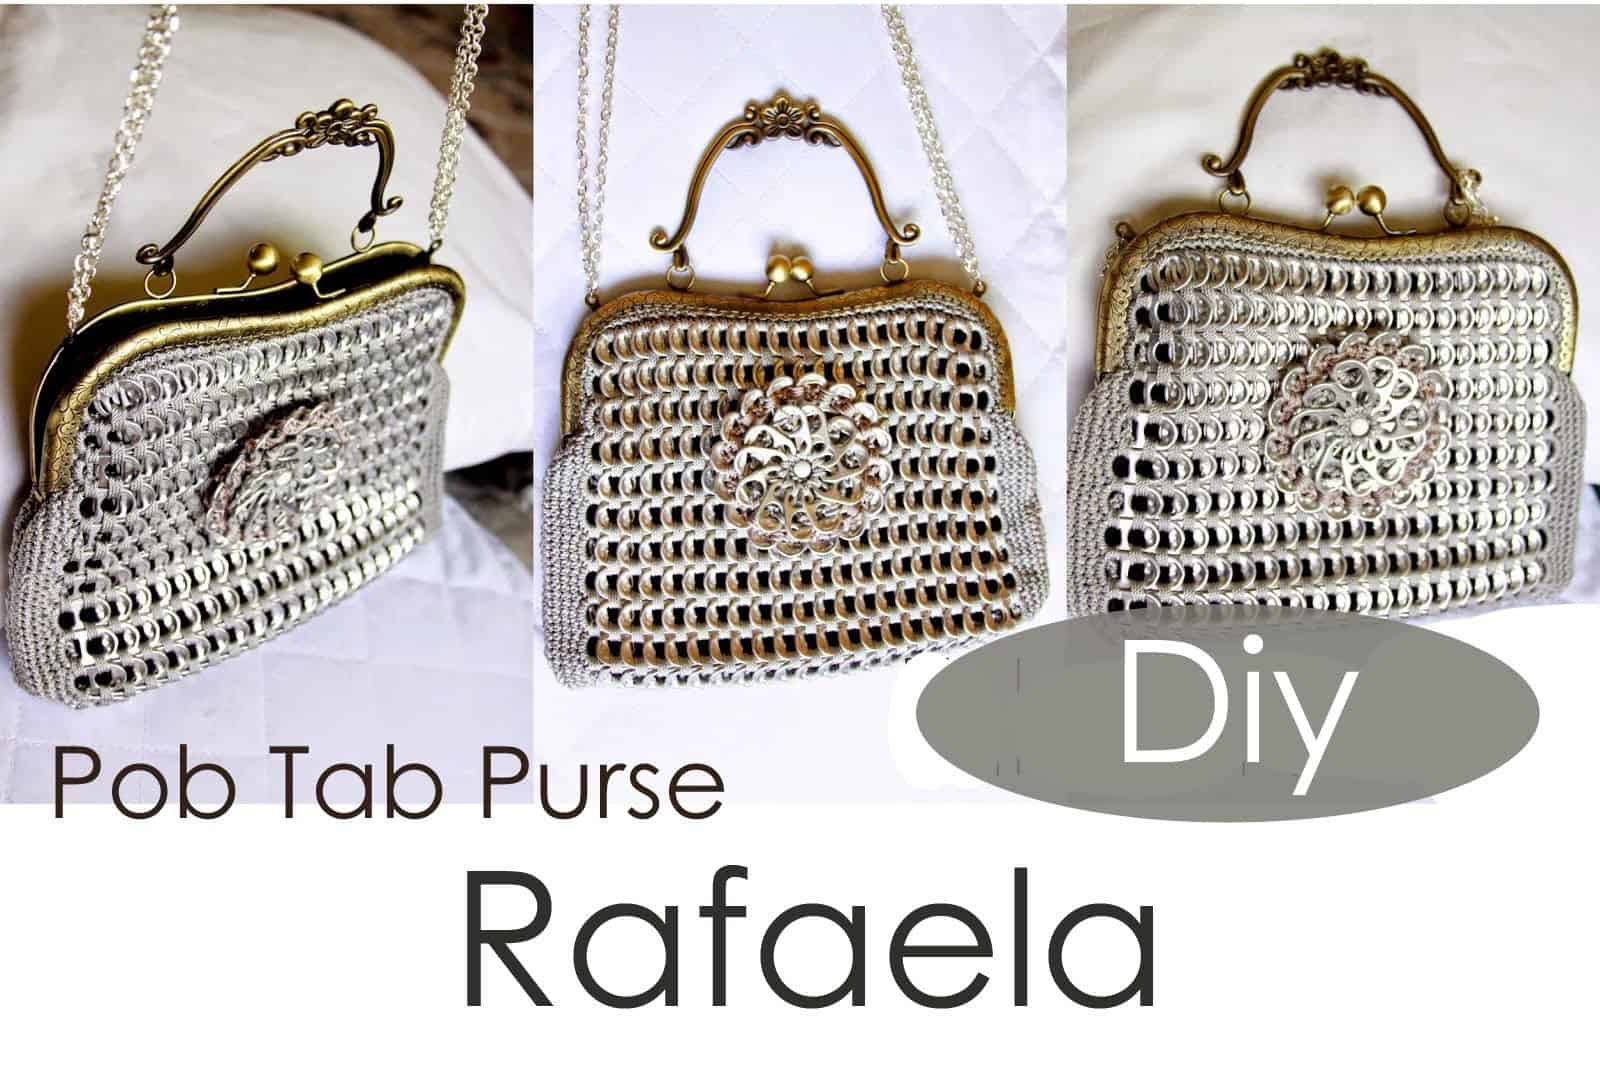 Vintage inspired pop tab chain clutch